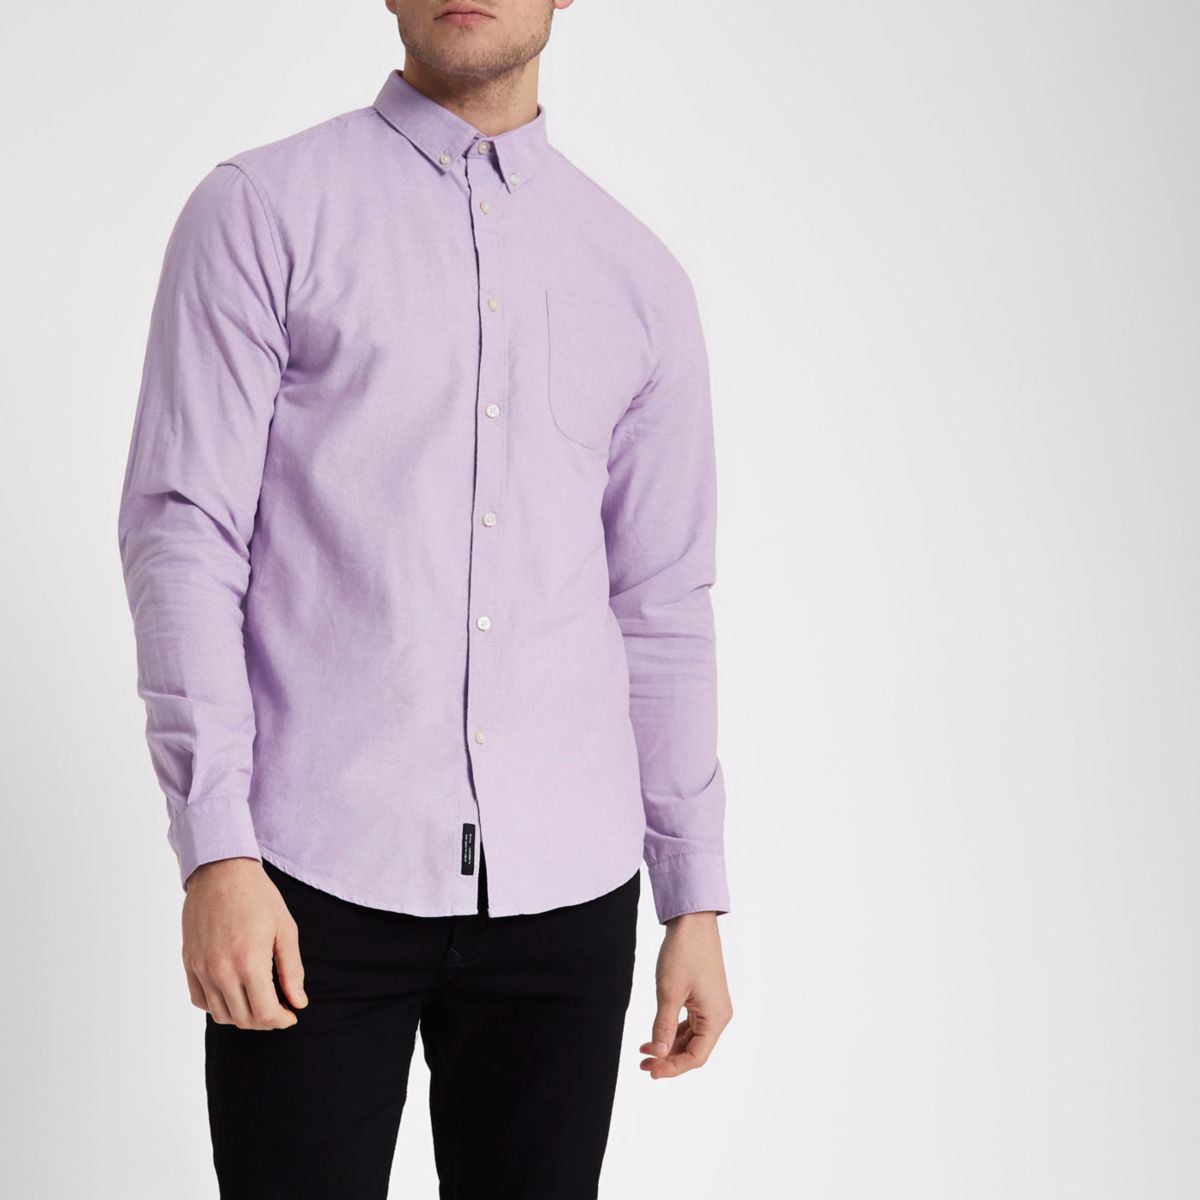 how to wear lilac shirt womens